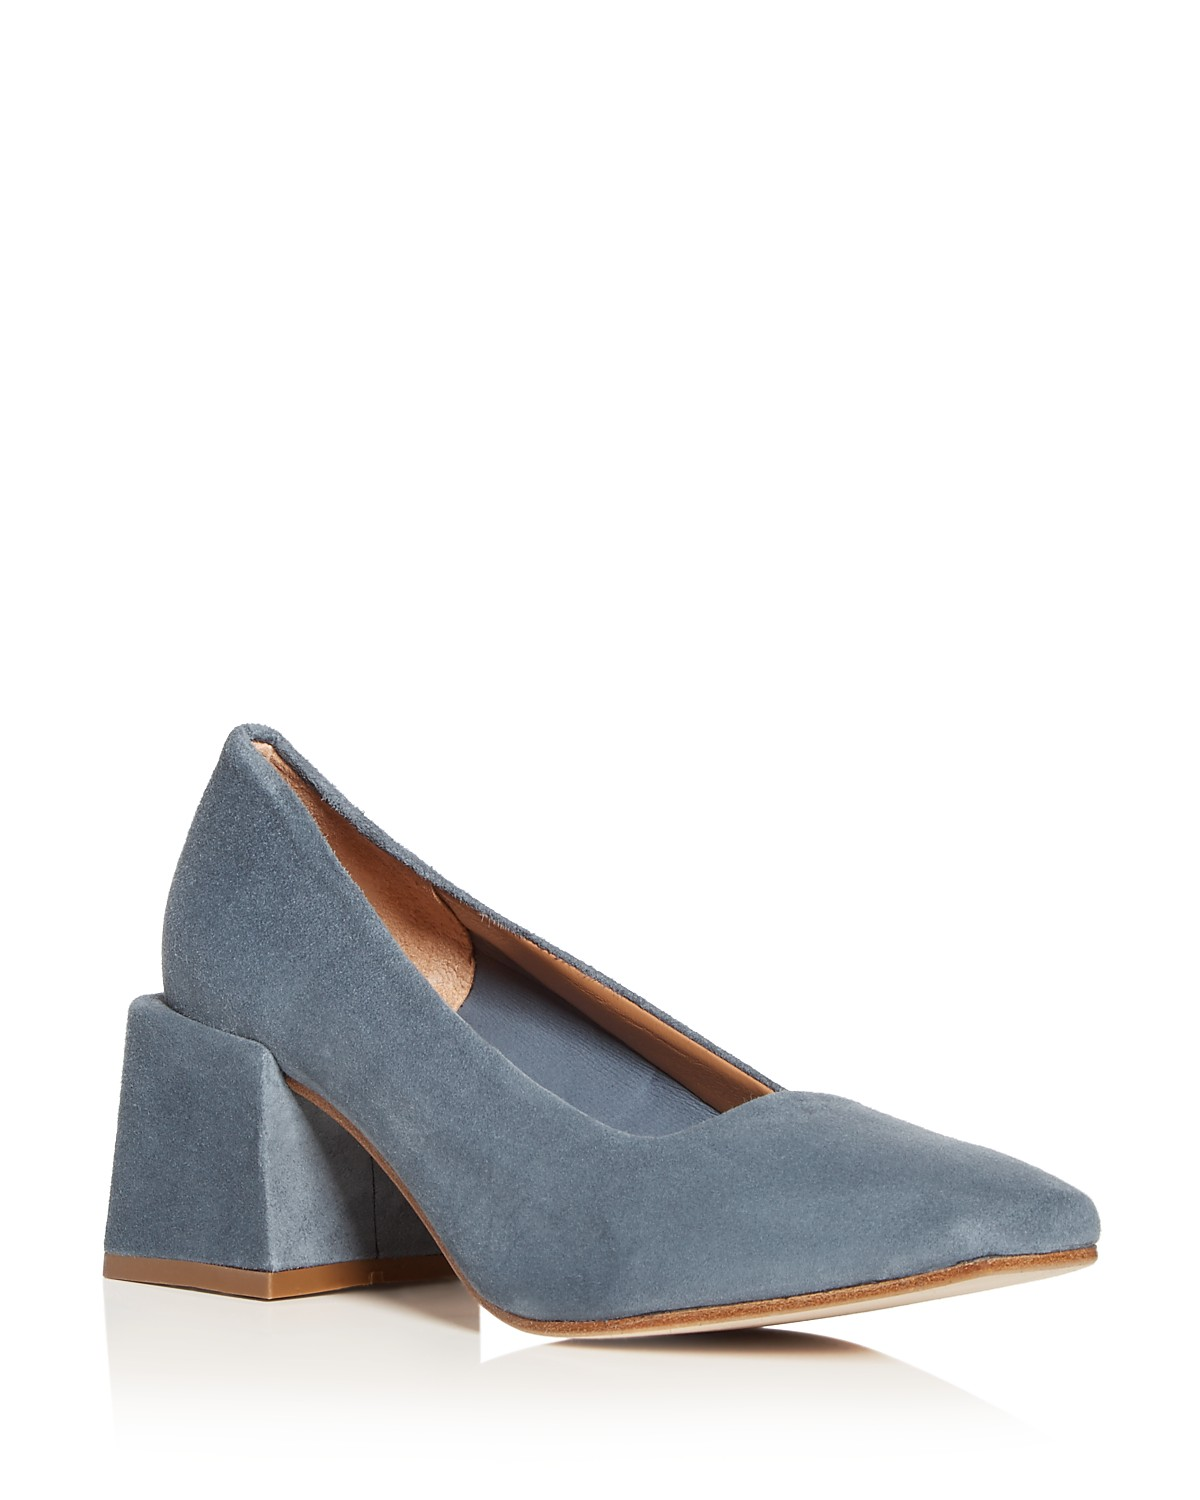 LOQ Women's Villa Suede Block Heel Pumps